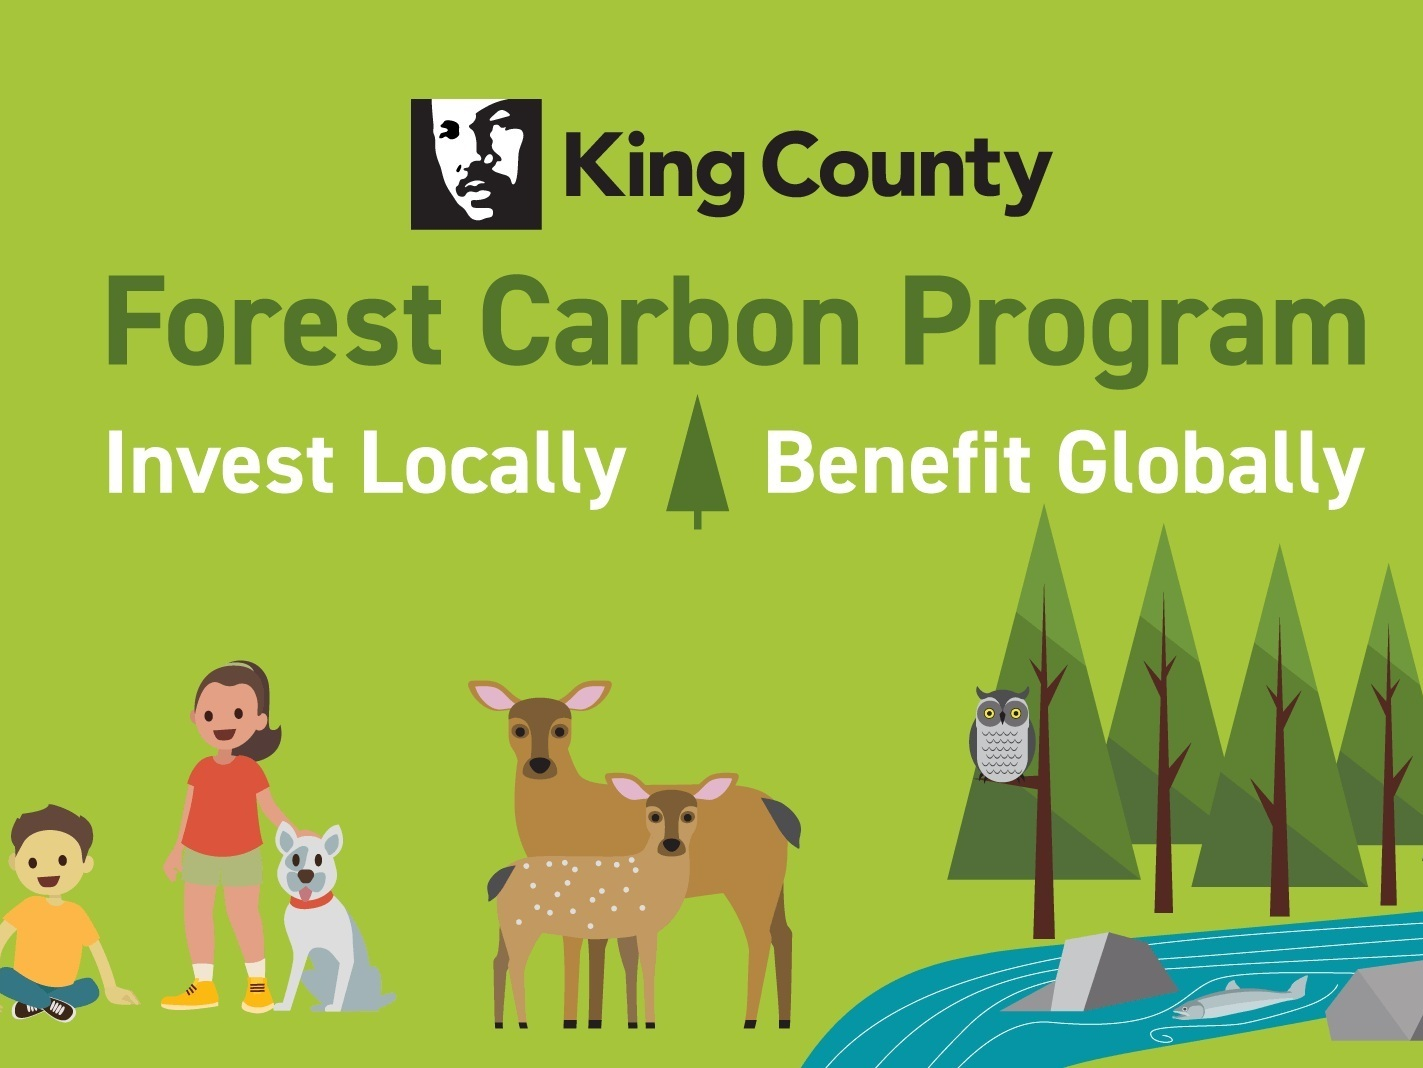 King County  -  King County is the Nation's First Local Government to Offer Certified Carbon Credits that Protect Local Forests